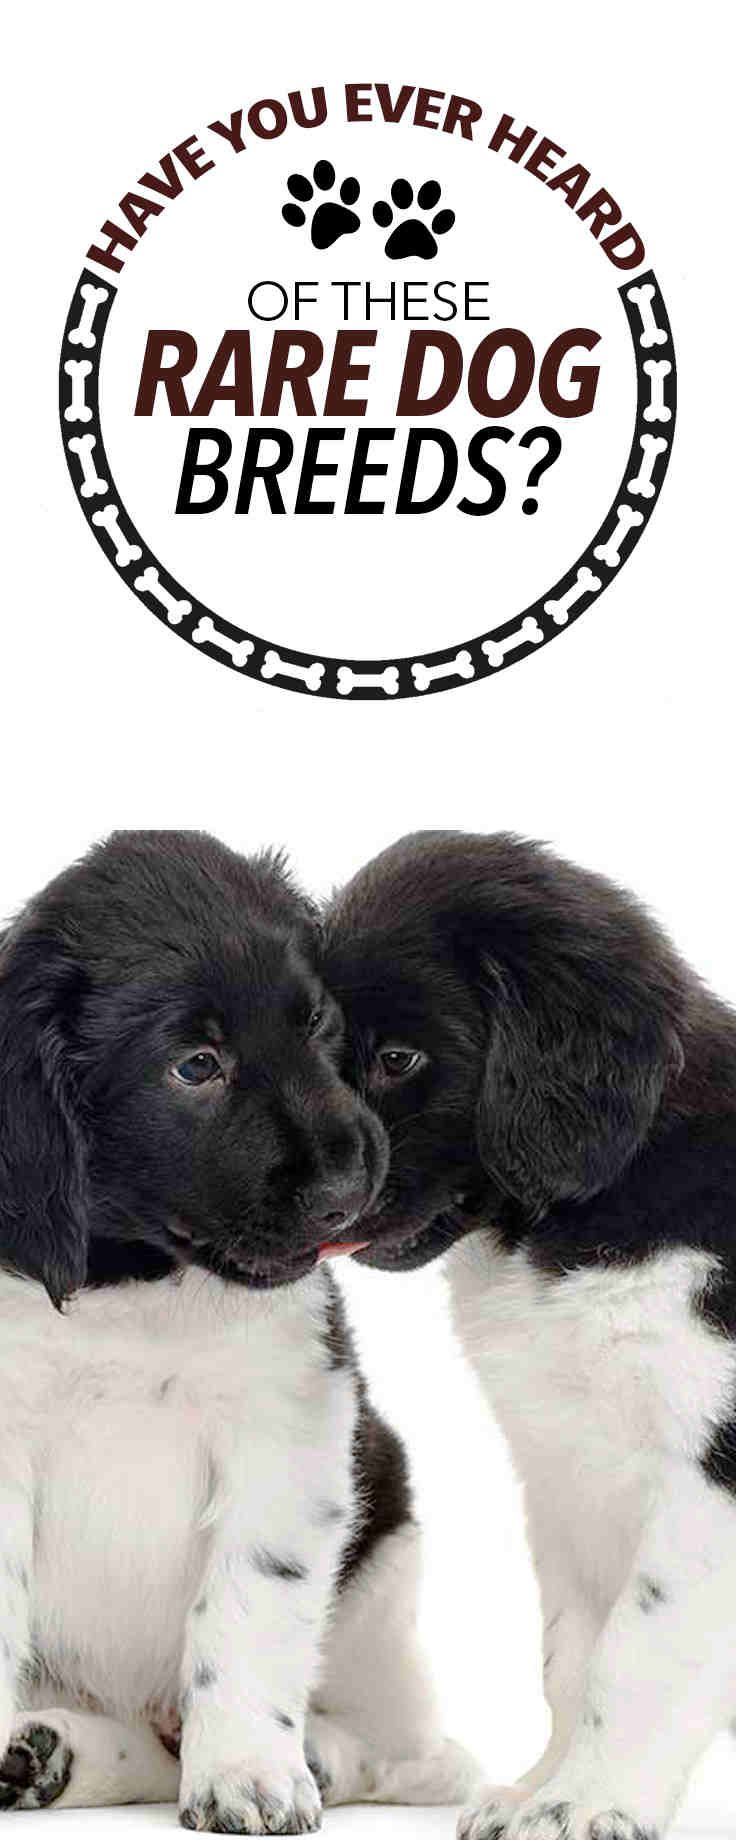 We Have Rounded Up Some Of The Rarest Dog Breeds The Animal Kingdom Has To Offer Dog Breeds Best Dog Breeds Rare Dog Breeds